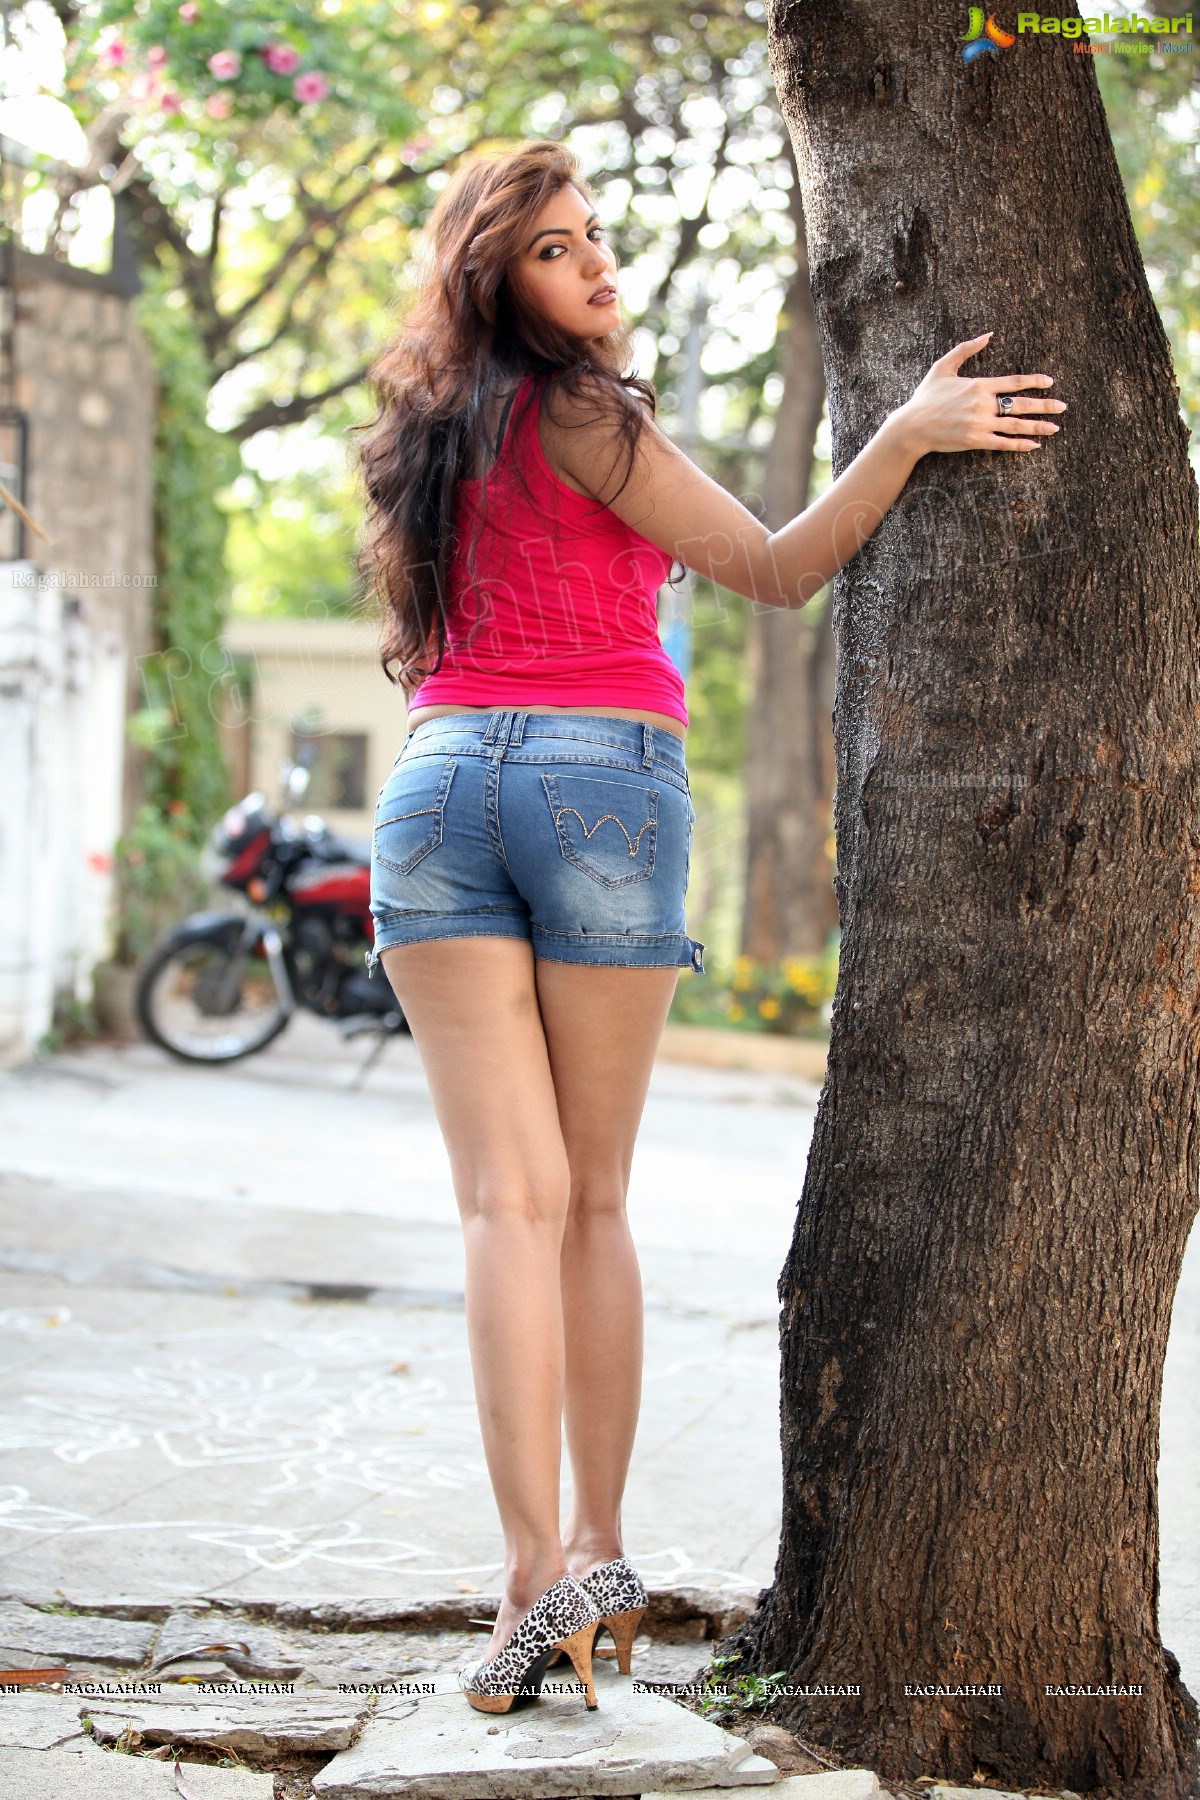 Sufi Sayyad (Exclusive) Image 171 | Telugu Actress Photo GalleryTelugu Movie Actress Photos ...